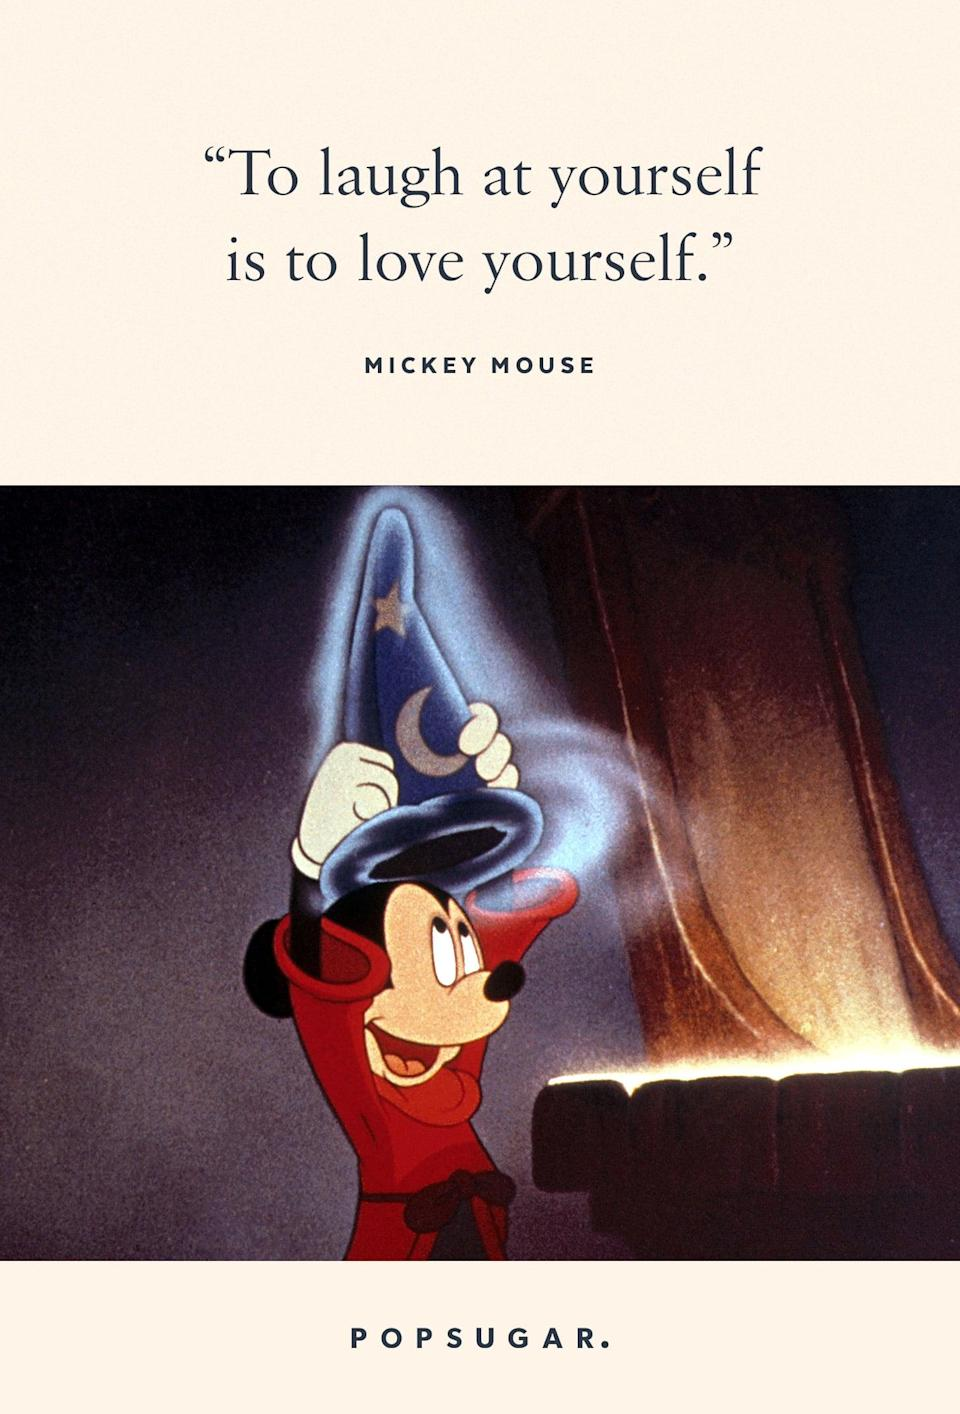 "<p>""To laugh at yourself is to love yourself."" - Mickey Mouse</p>"